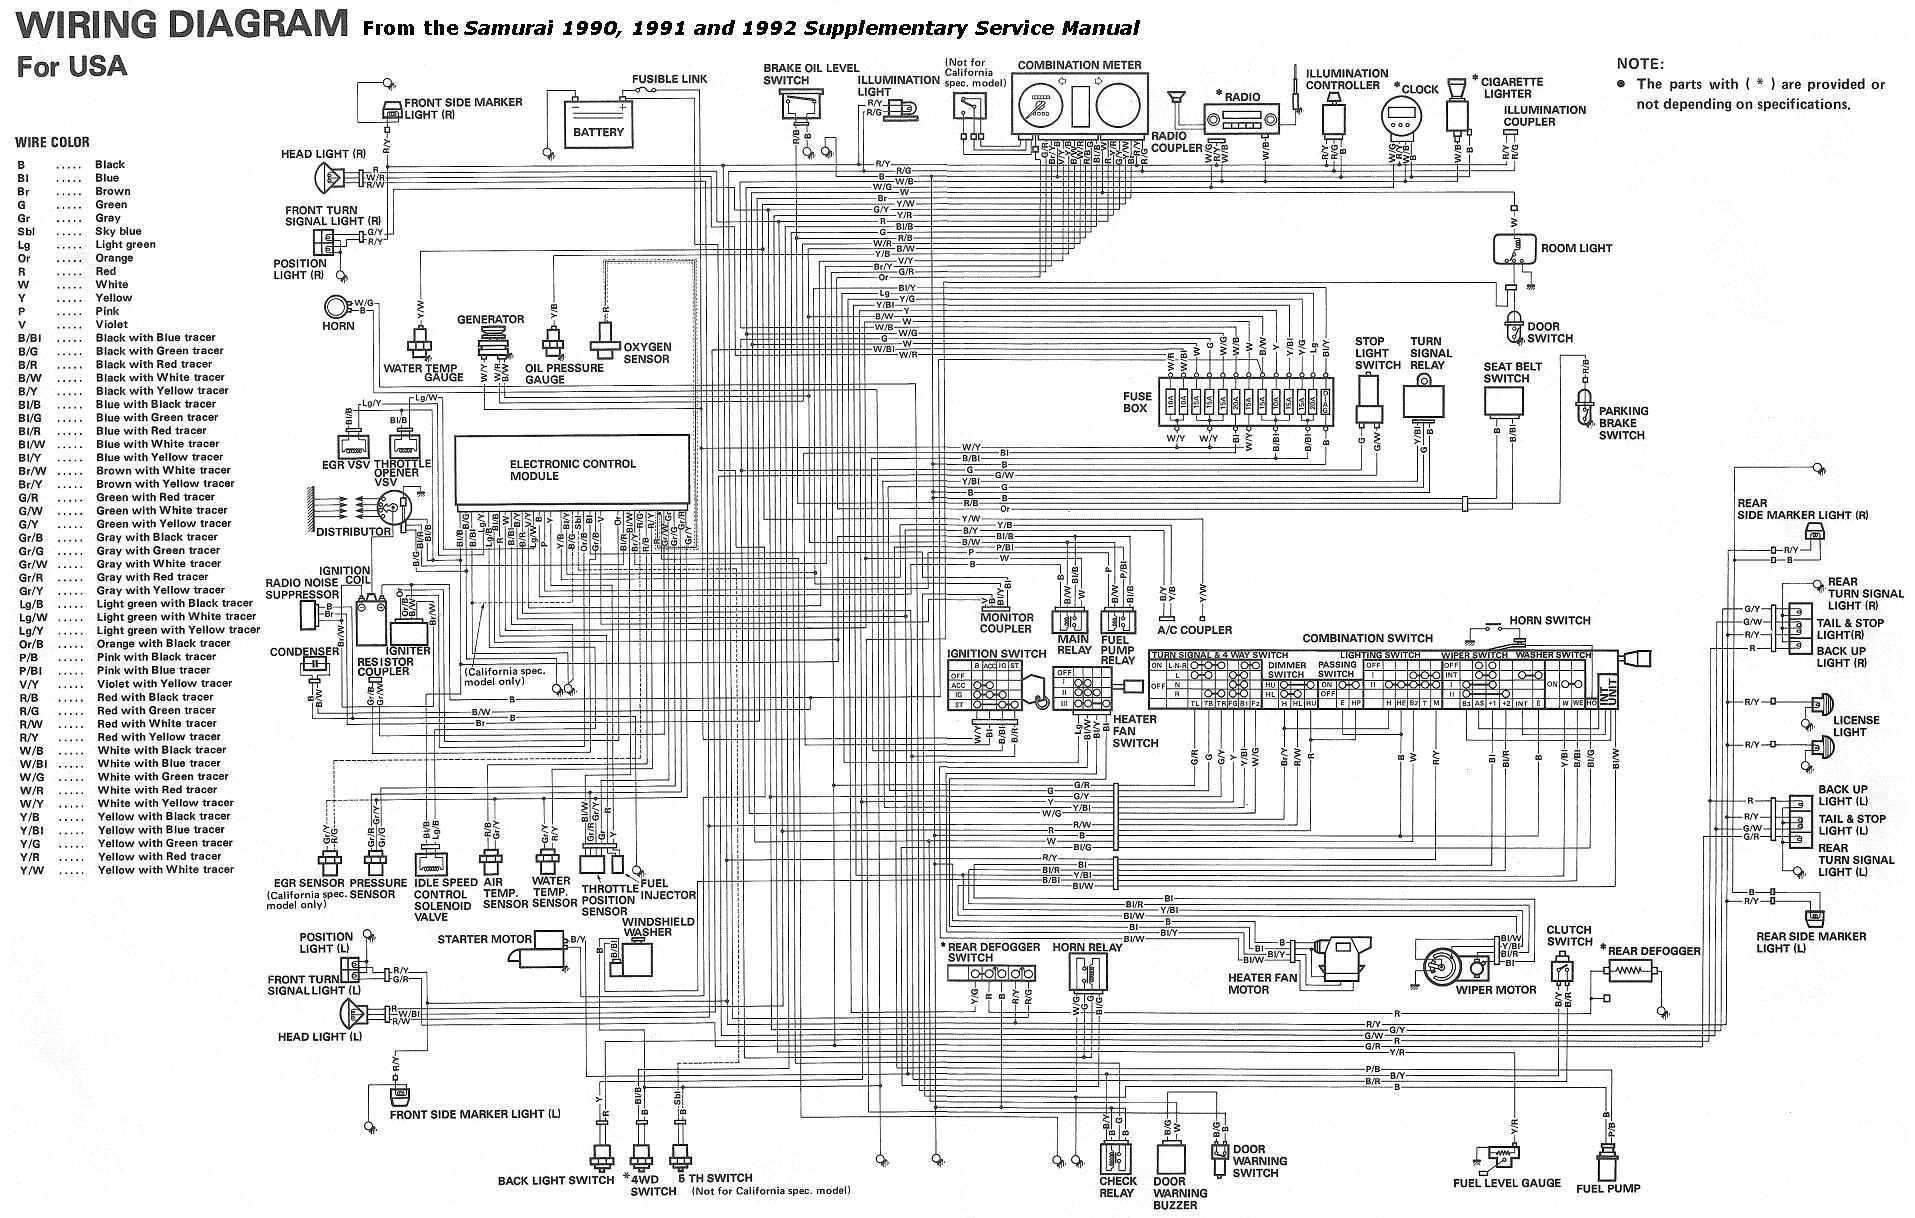 1995 yamaha wolverine wiring diagram archive of automotive wiring kawasaki prairie 700 wiring diagram 1995 yamaha [ 1915 x 1218 Pixel ]